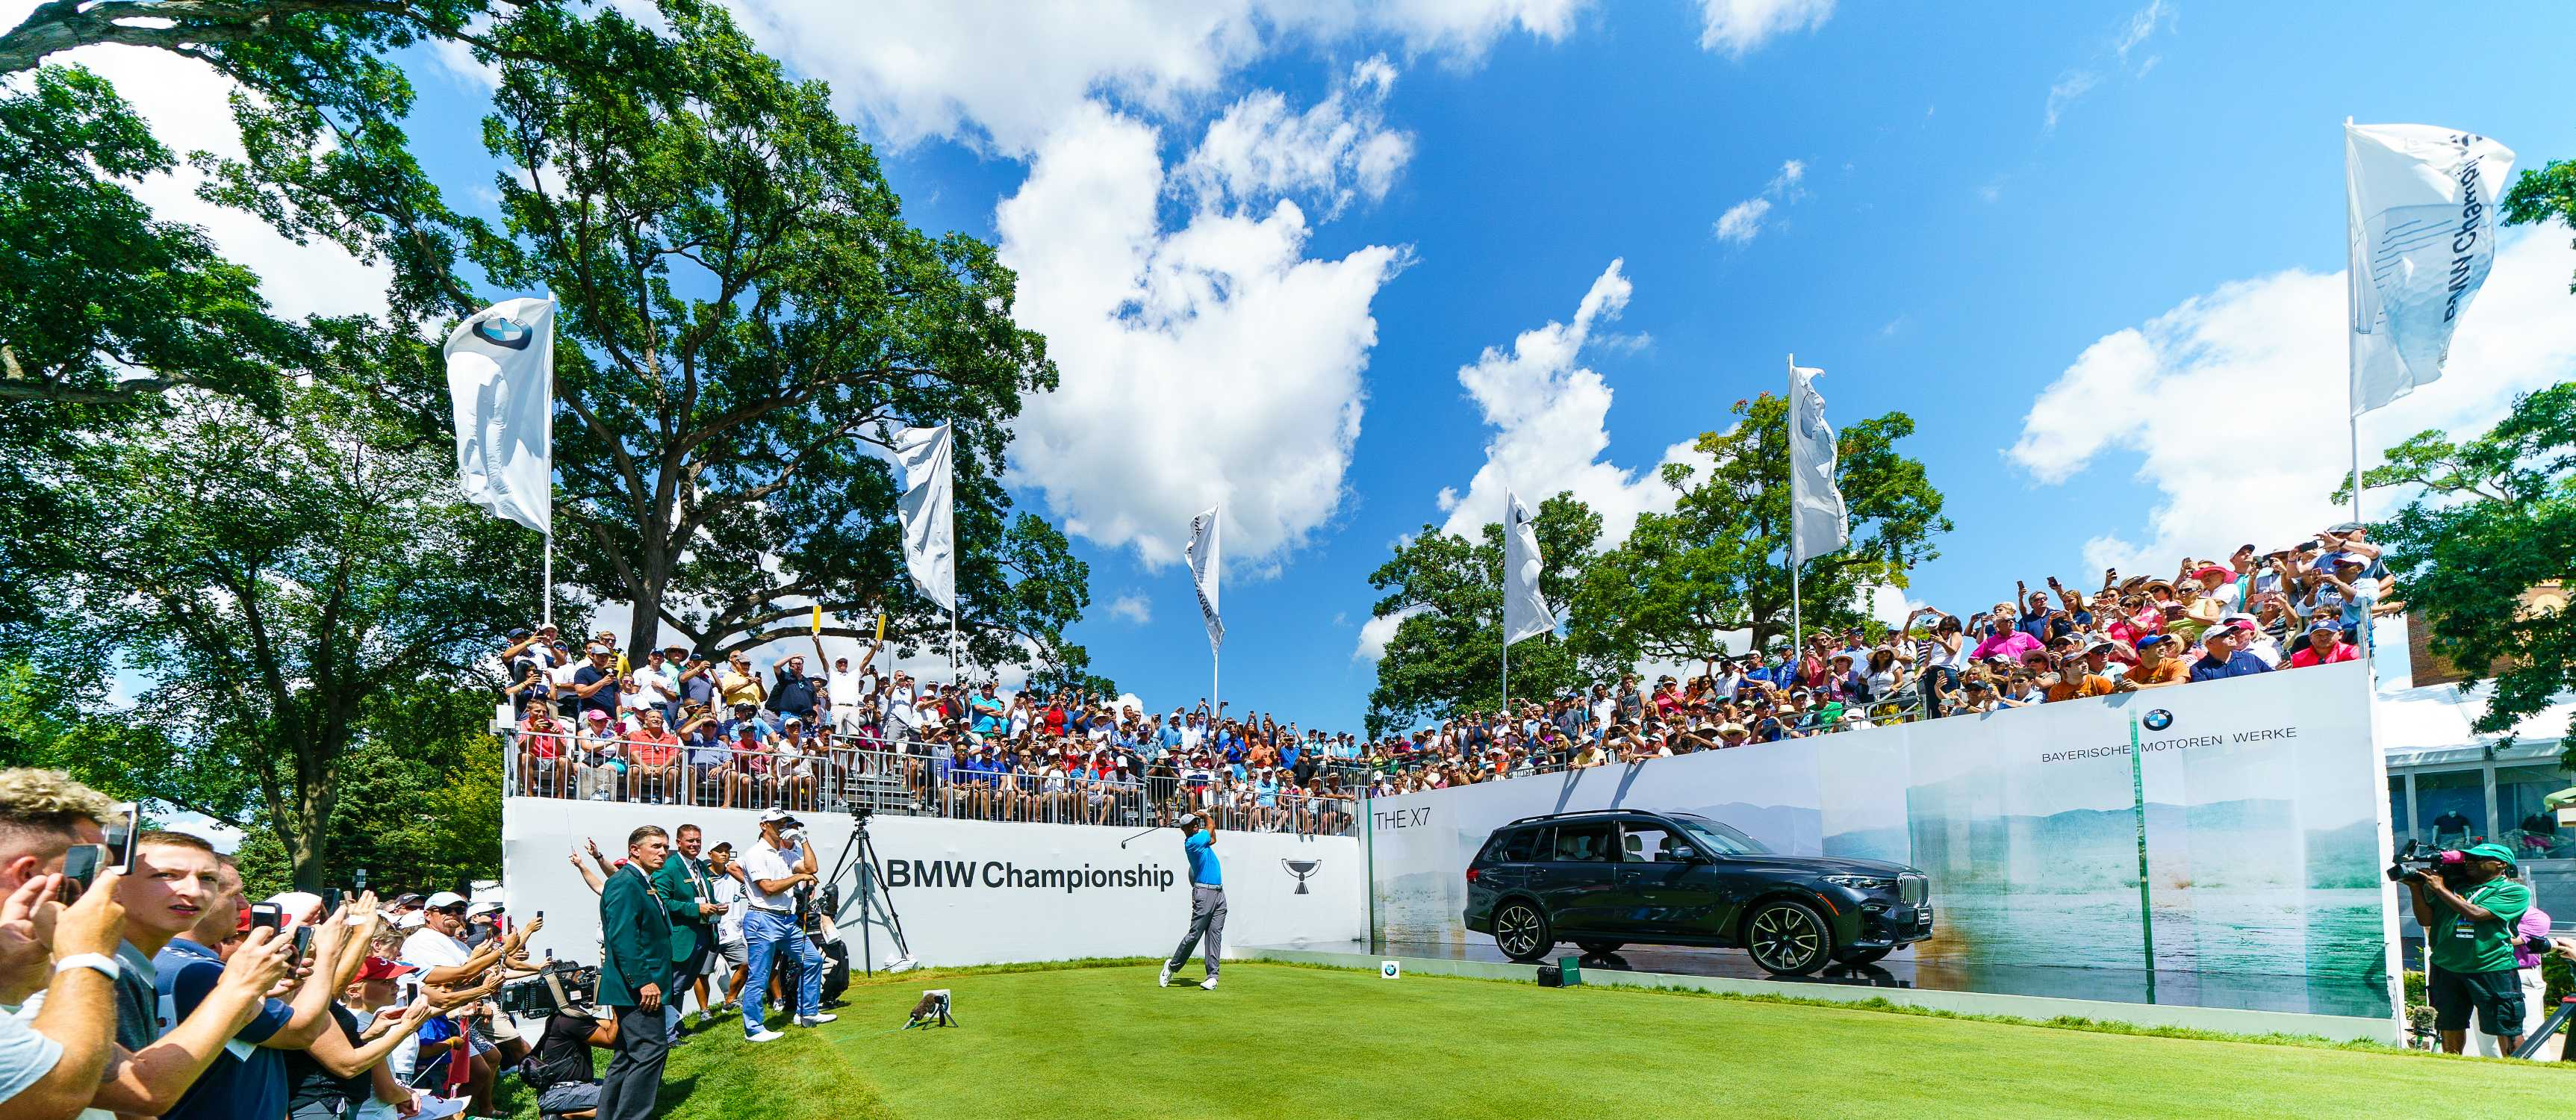 Bmw Renews Partnership With Pga Tour And Western Golf Association To Remain Title Sponsor Of The Bmw Championship